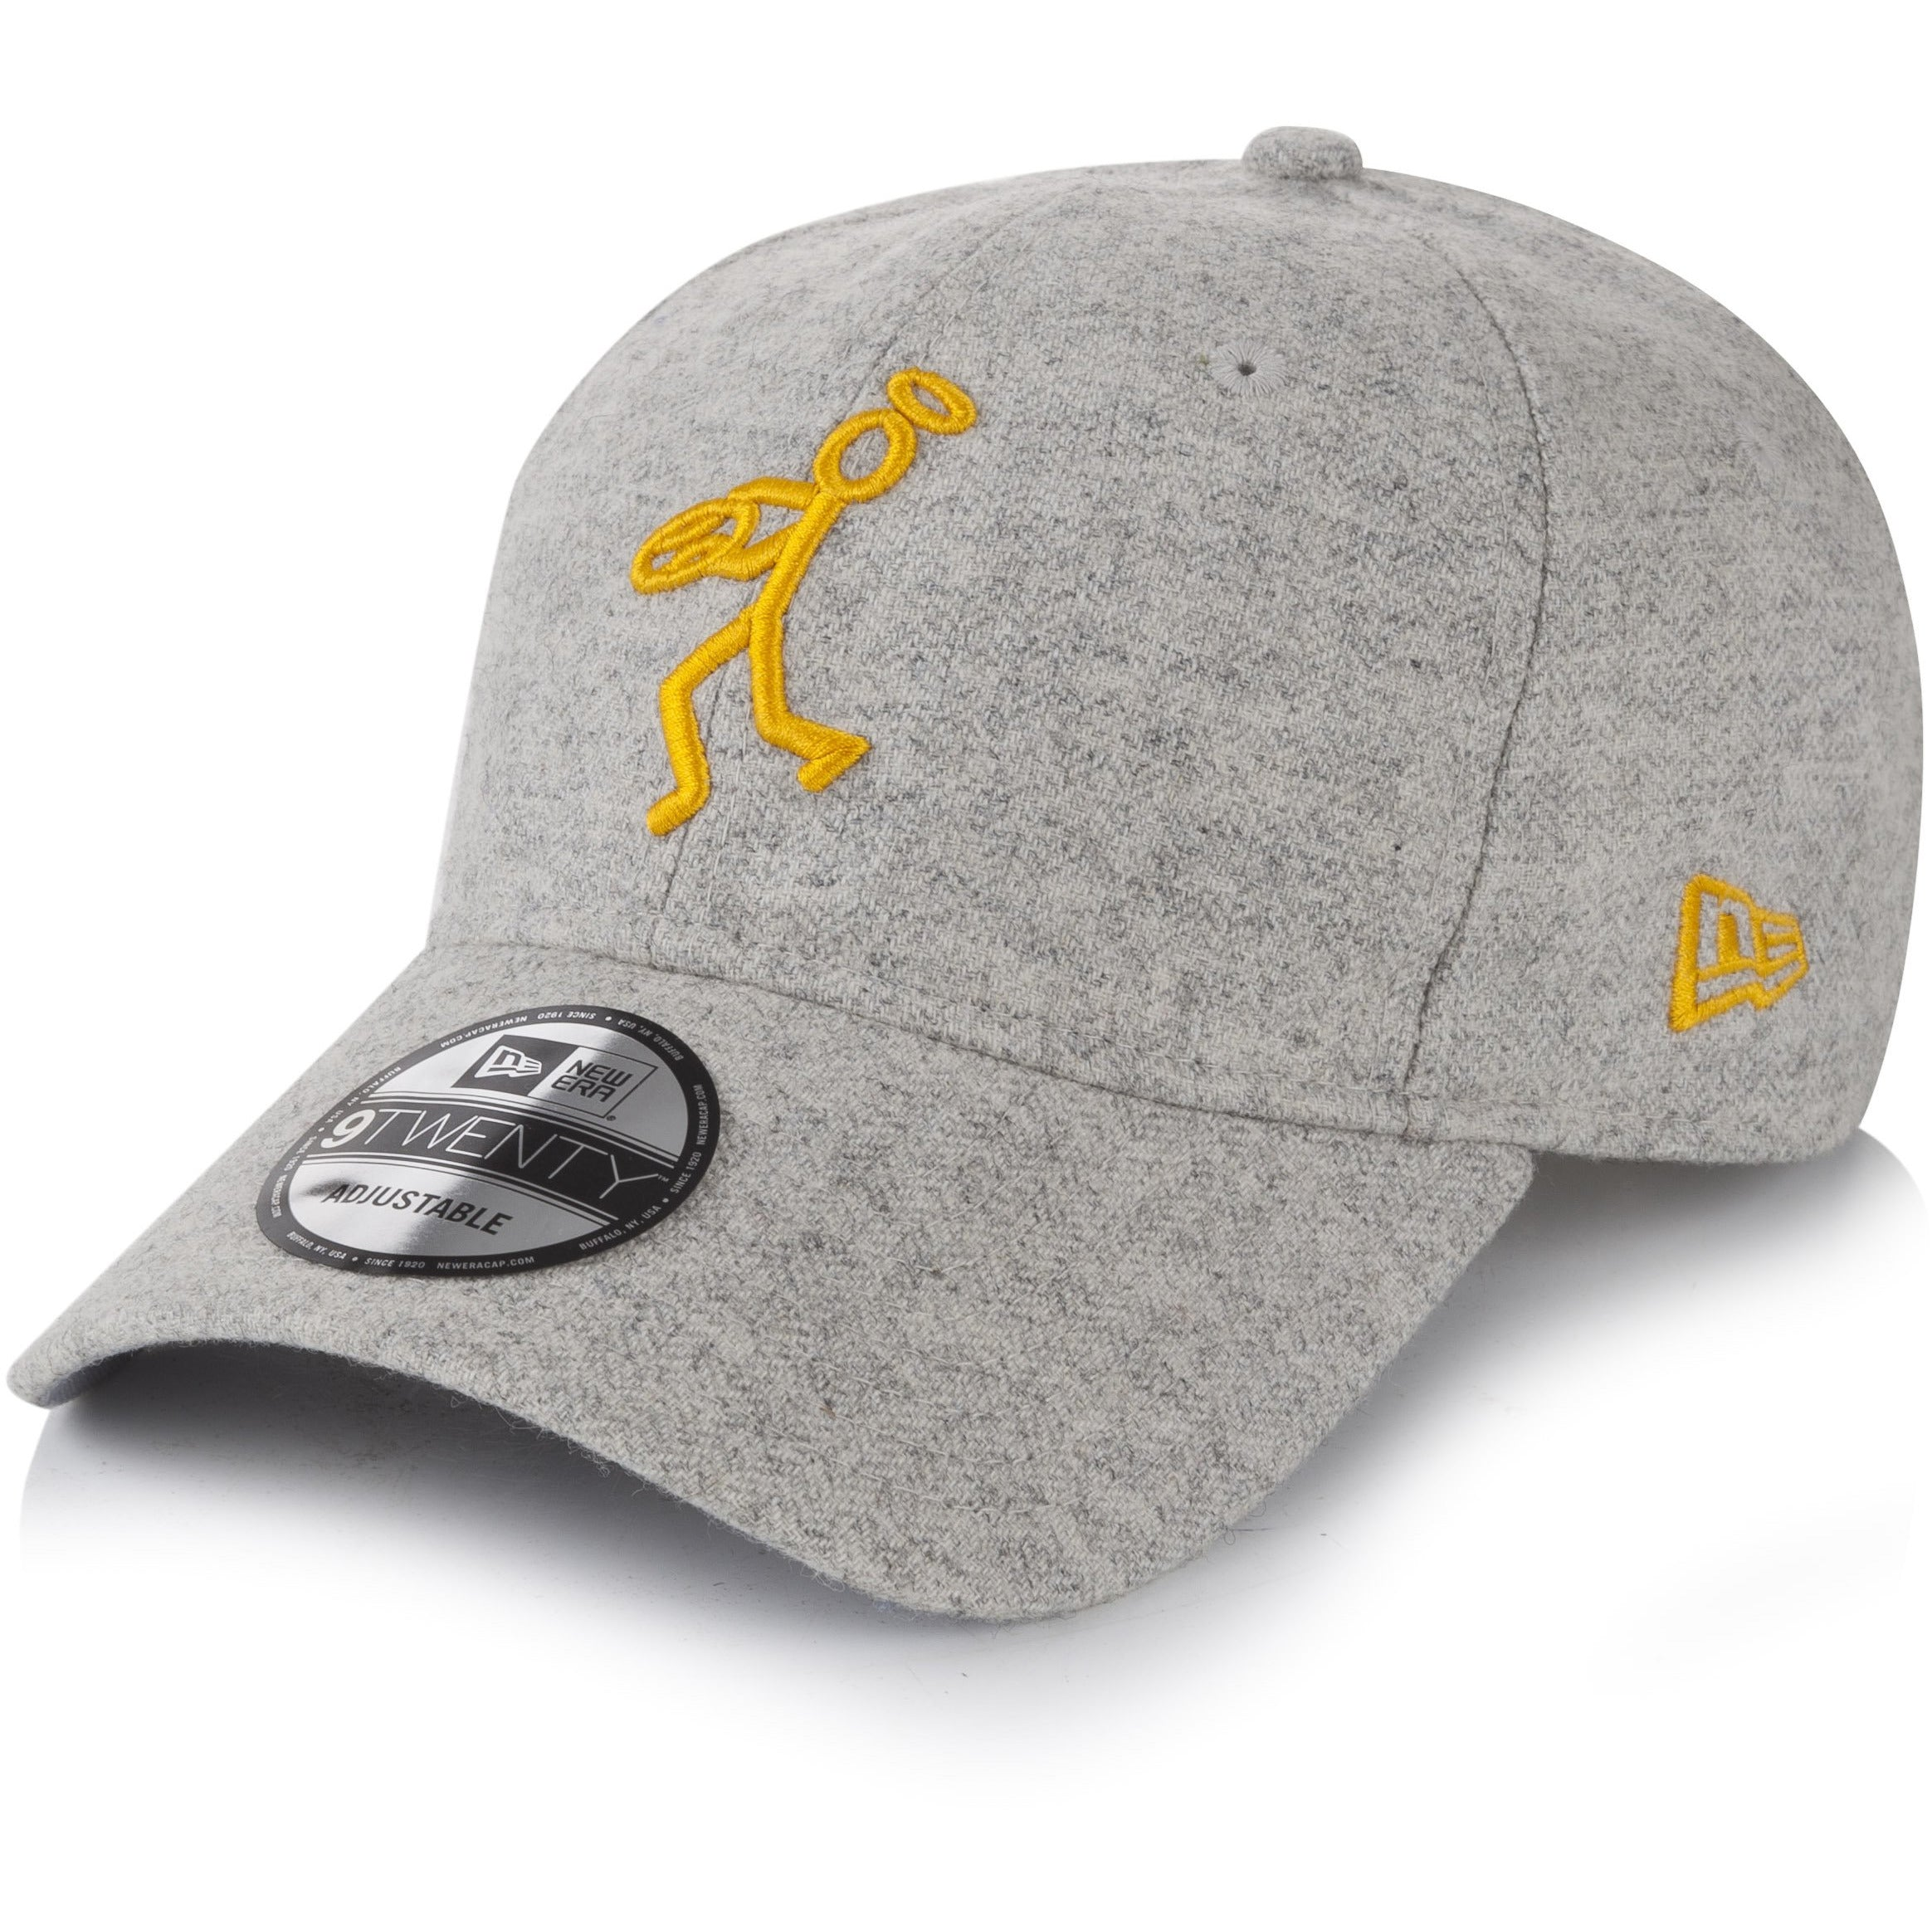 New Era Herringbone Stickman Cap